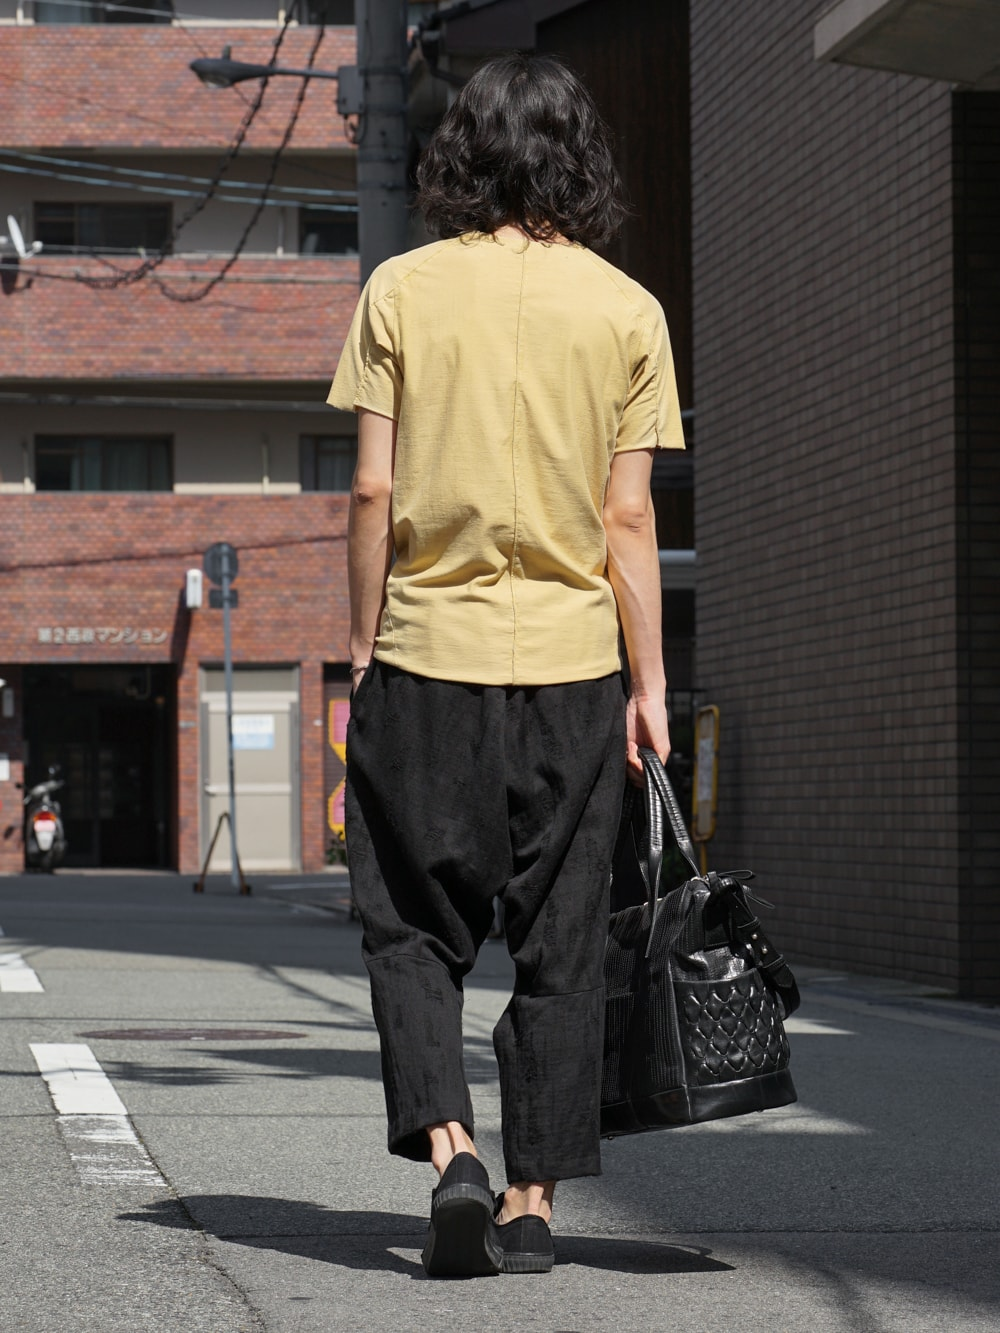 individual sentiments Short Sleeve T Cotton Linen Jersey back style 03